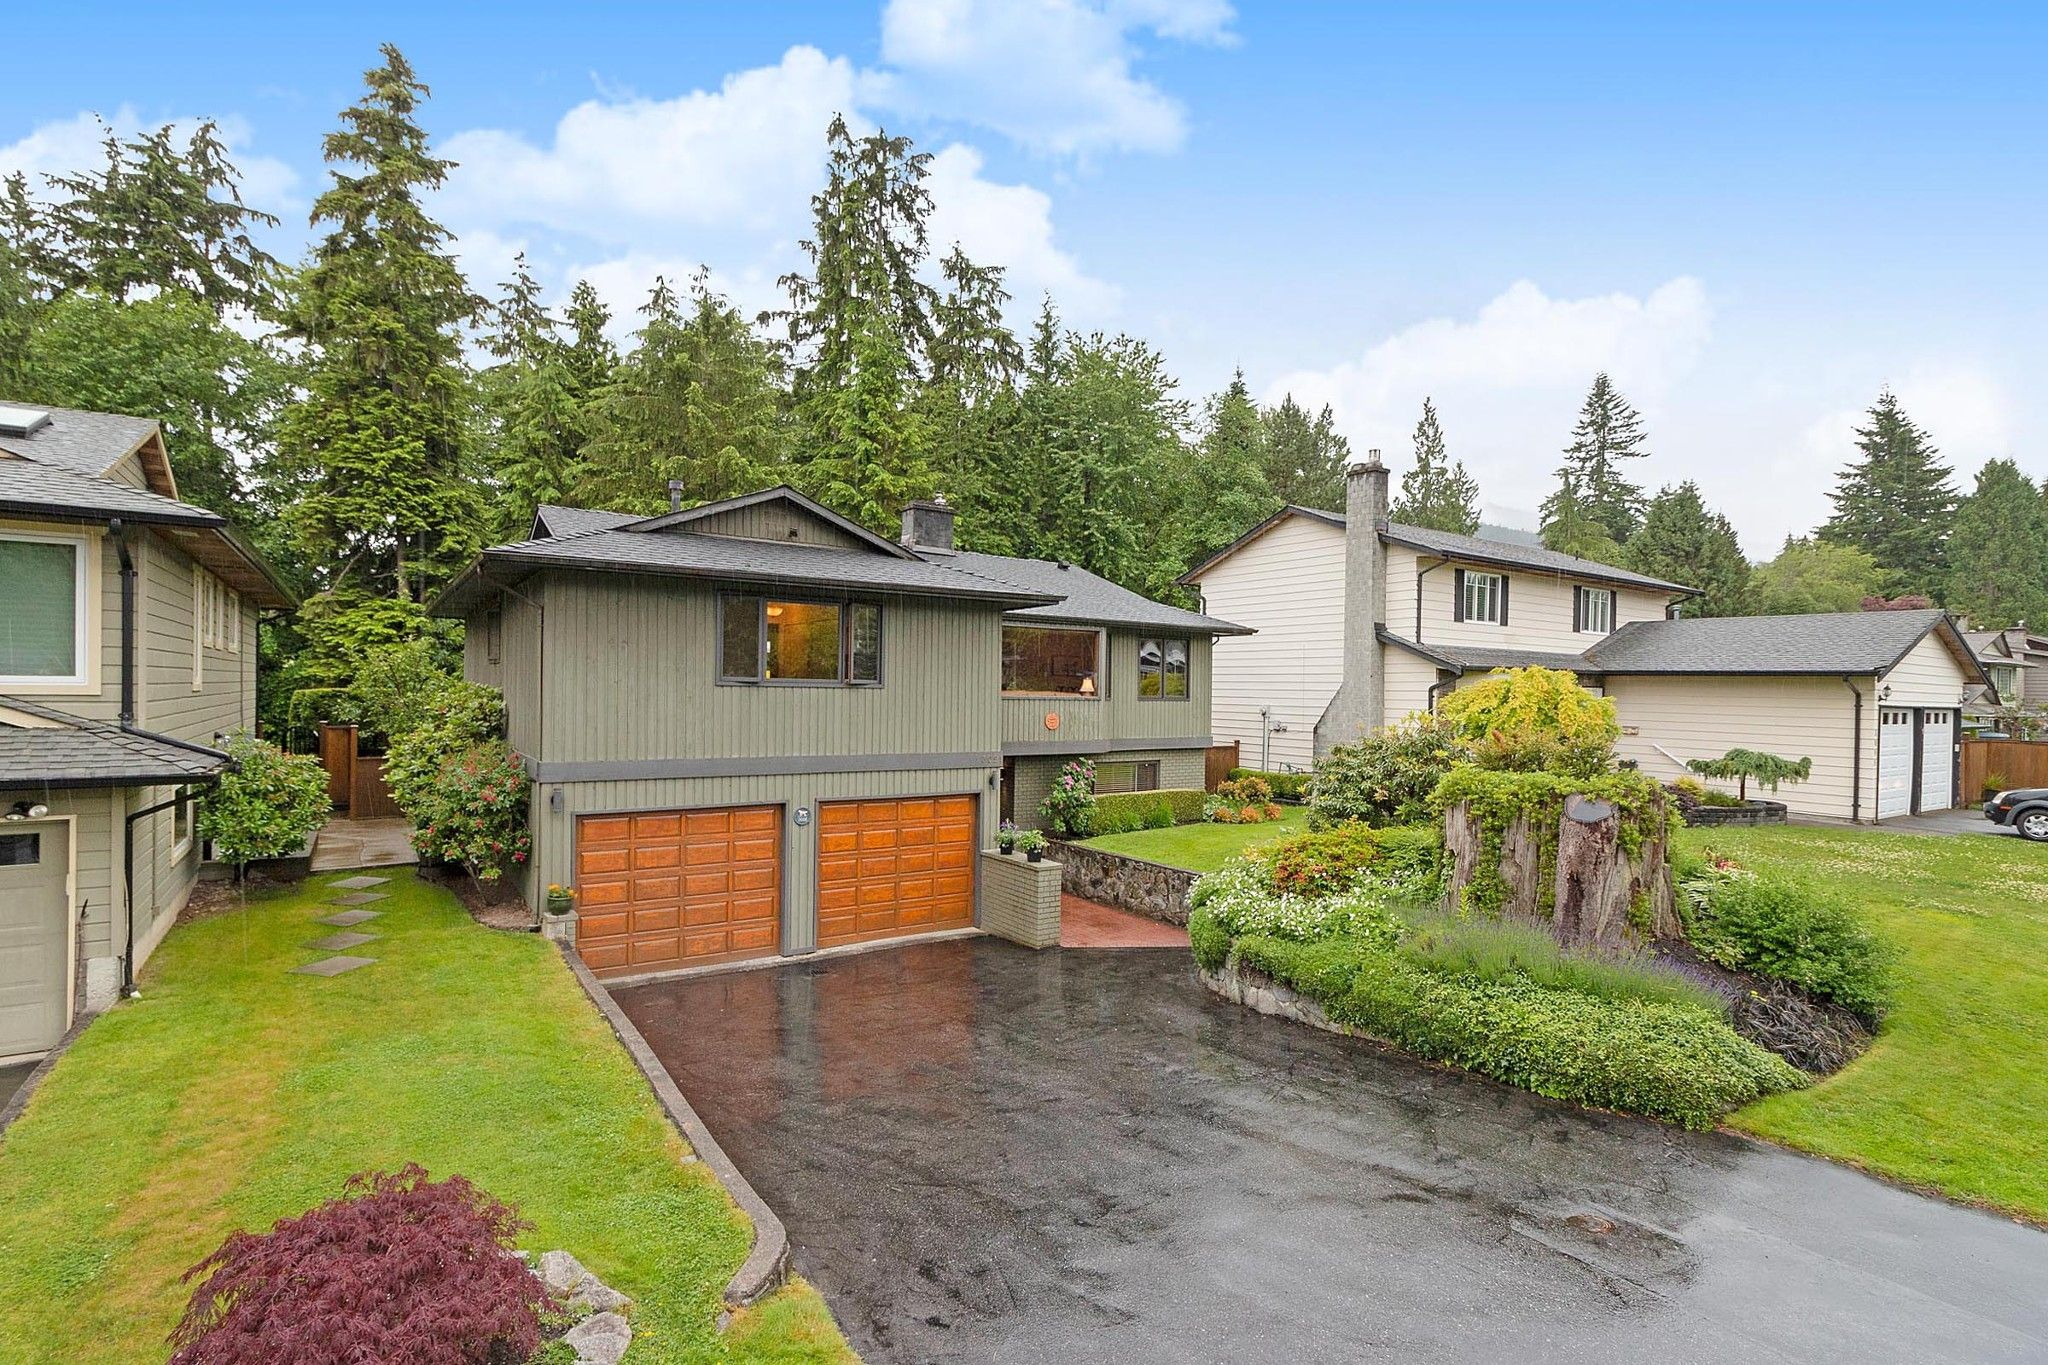 """Main Photo: 3091 HOSKINS Road in North Vancouver: Lynn Valley House for sale in """"Lynn Valley"""" : MLS®# R2465736"""